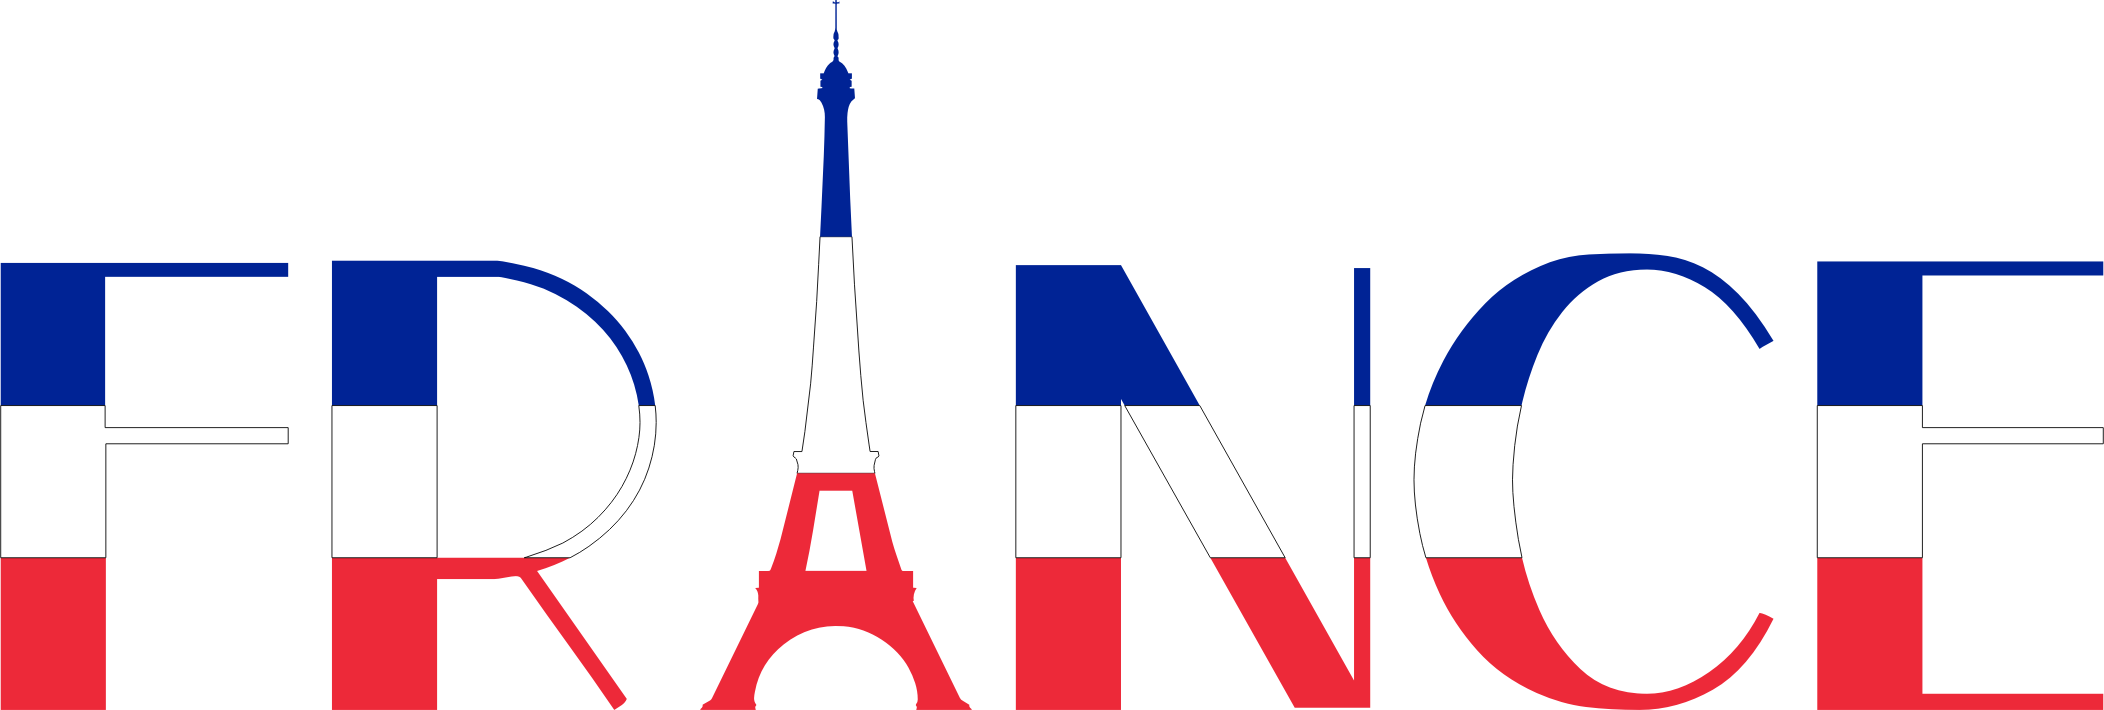 France Typography by GDJ